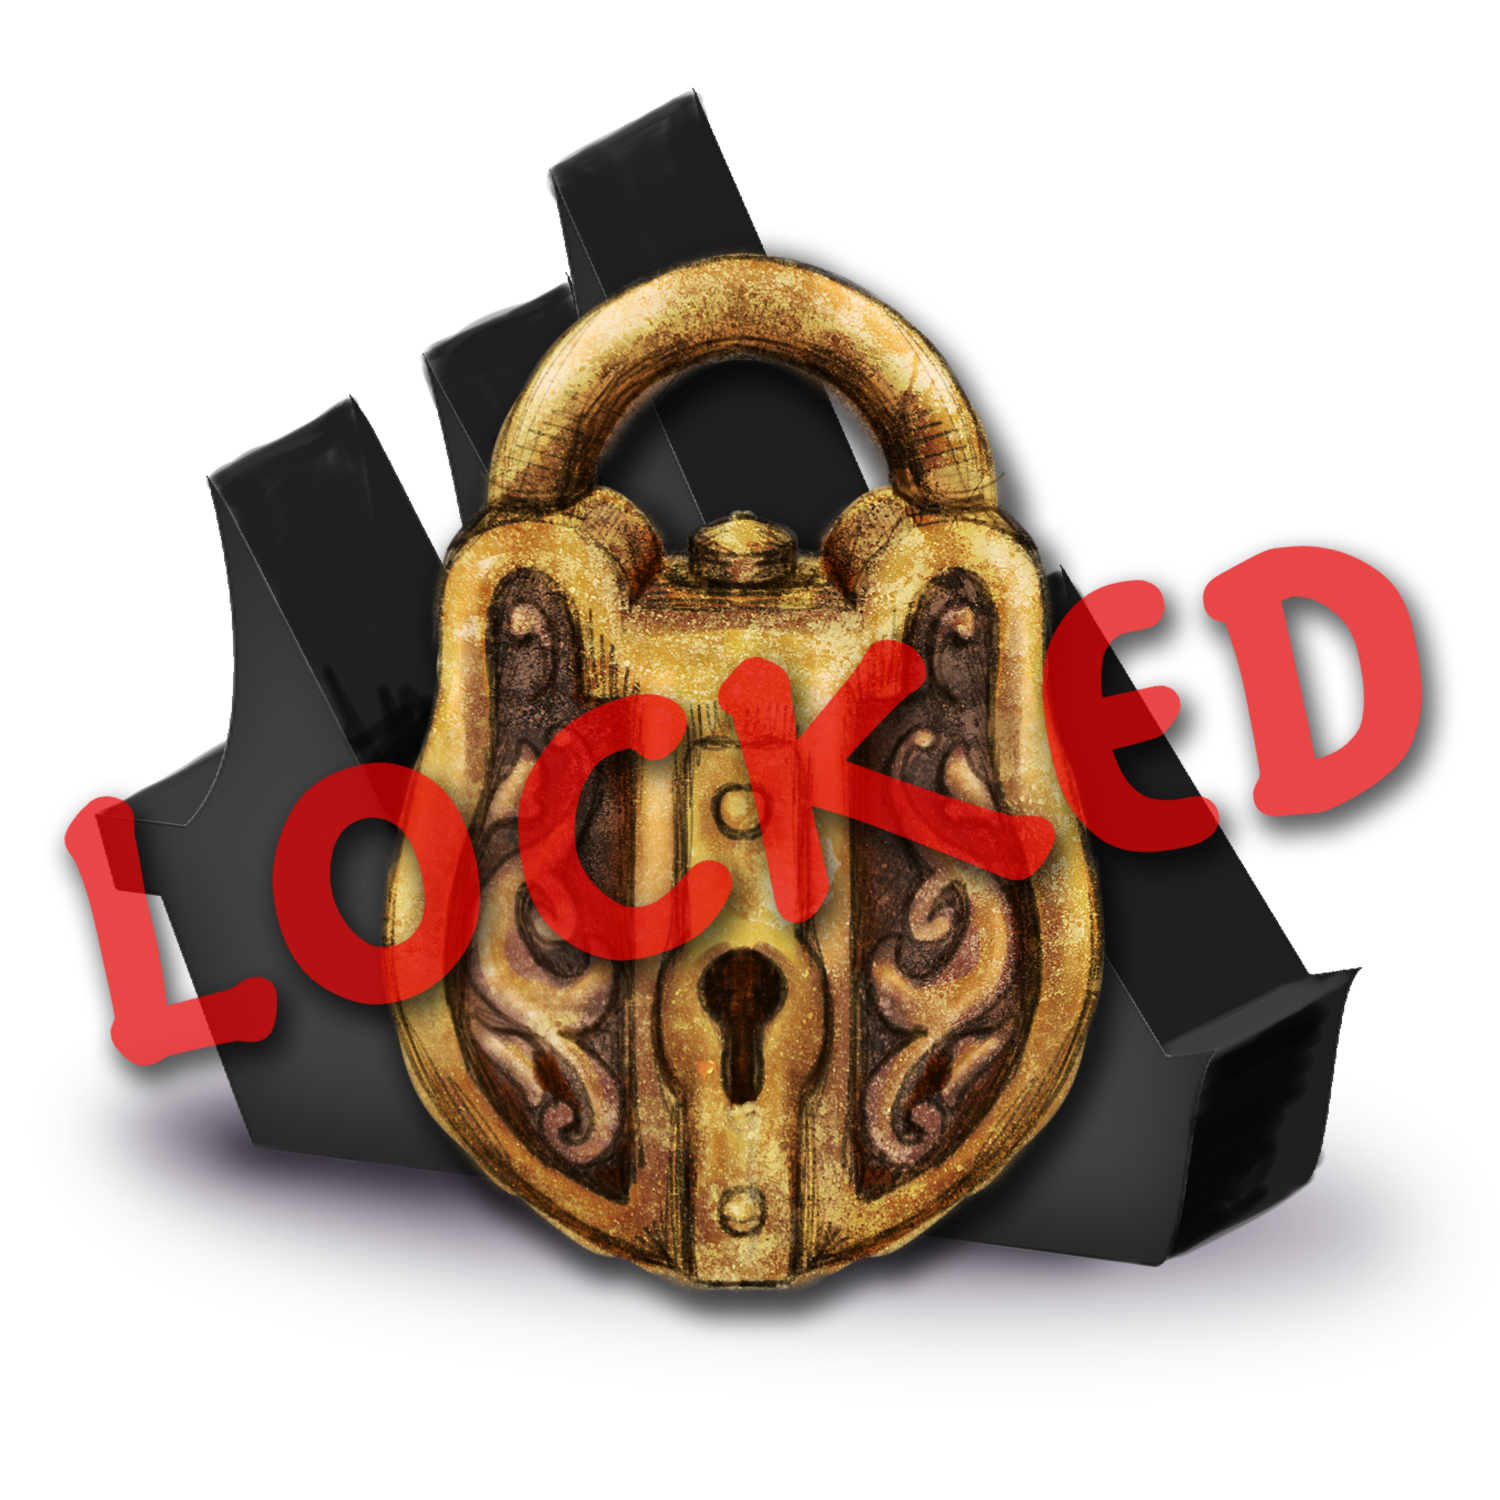 Locked-Pirate.jpg